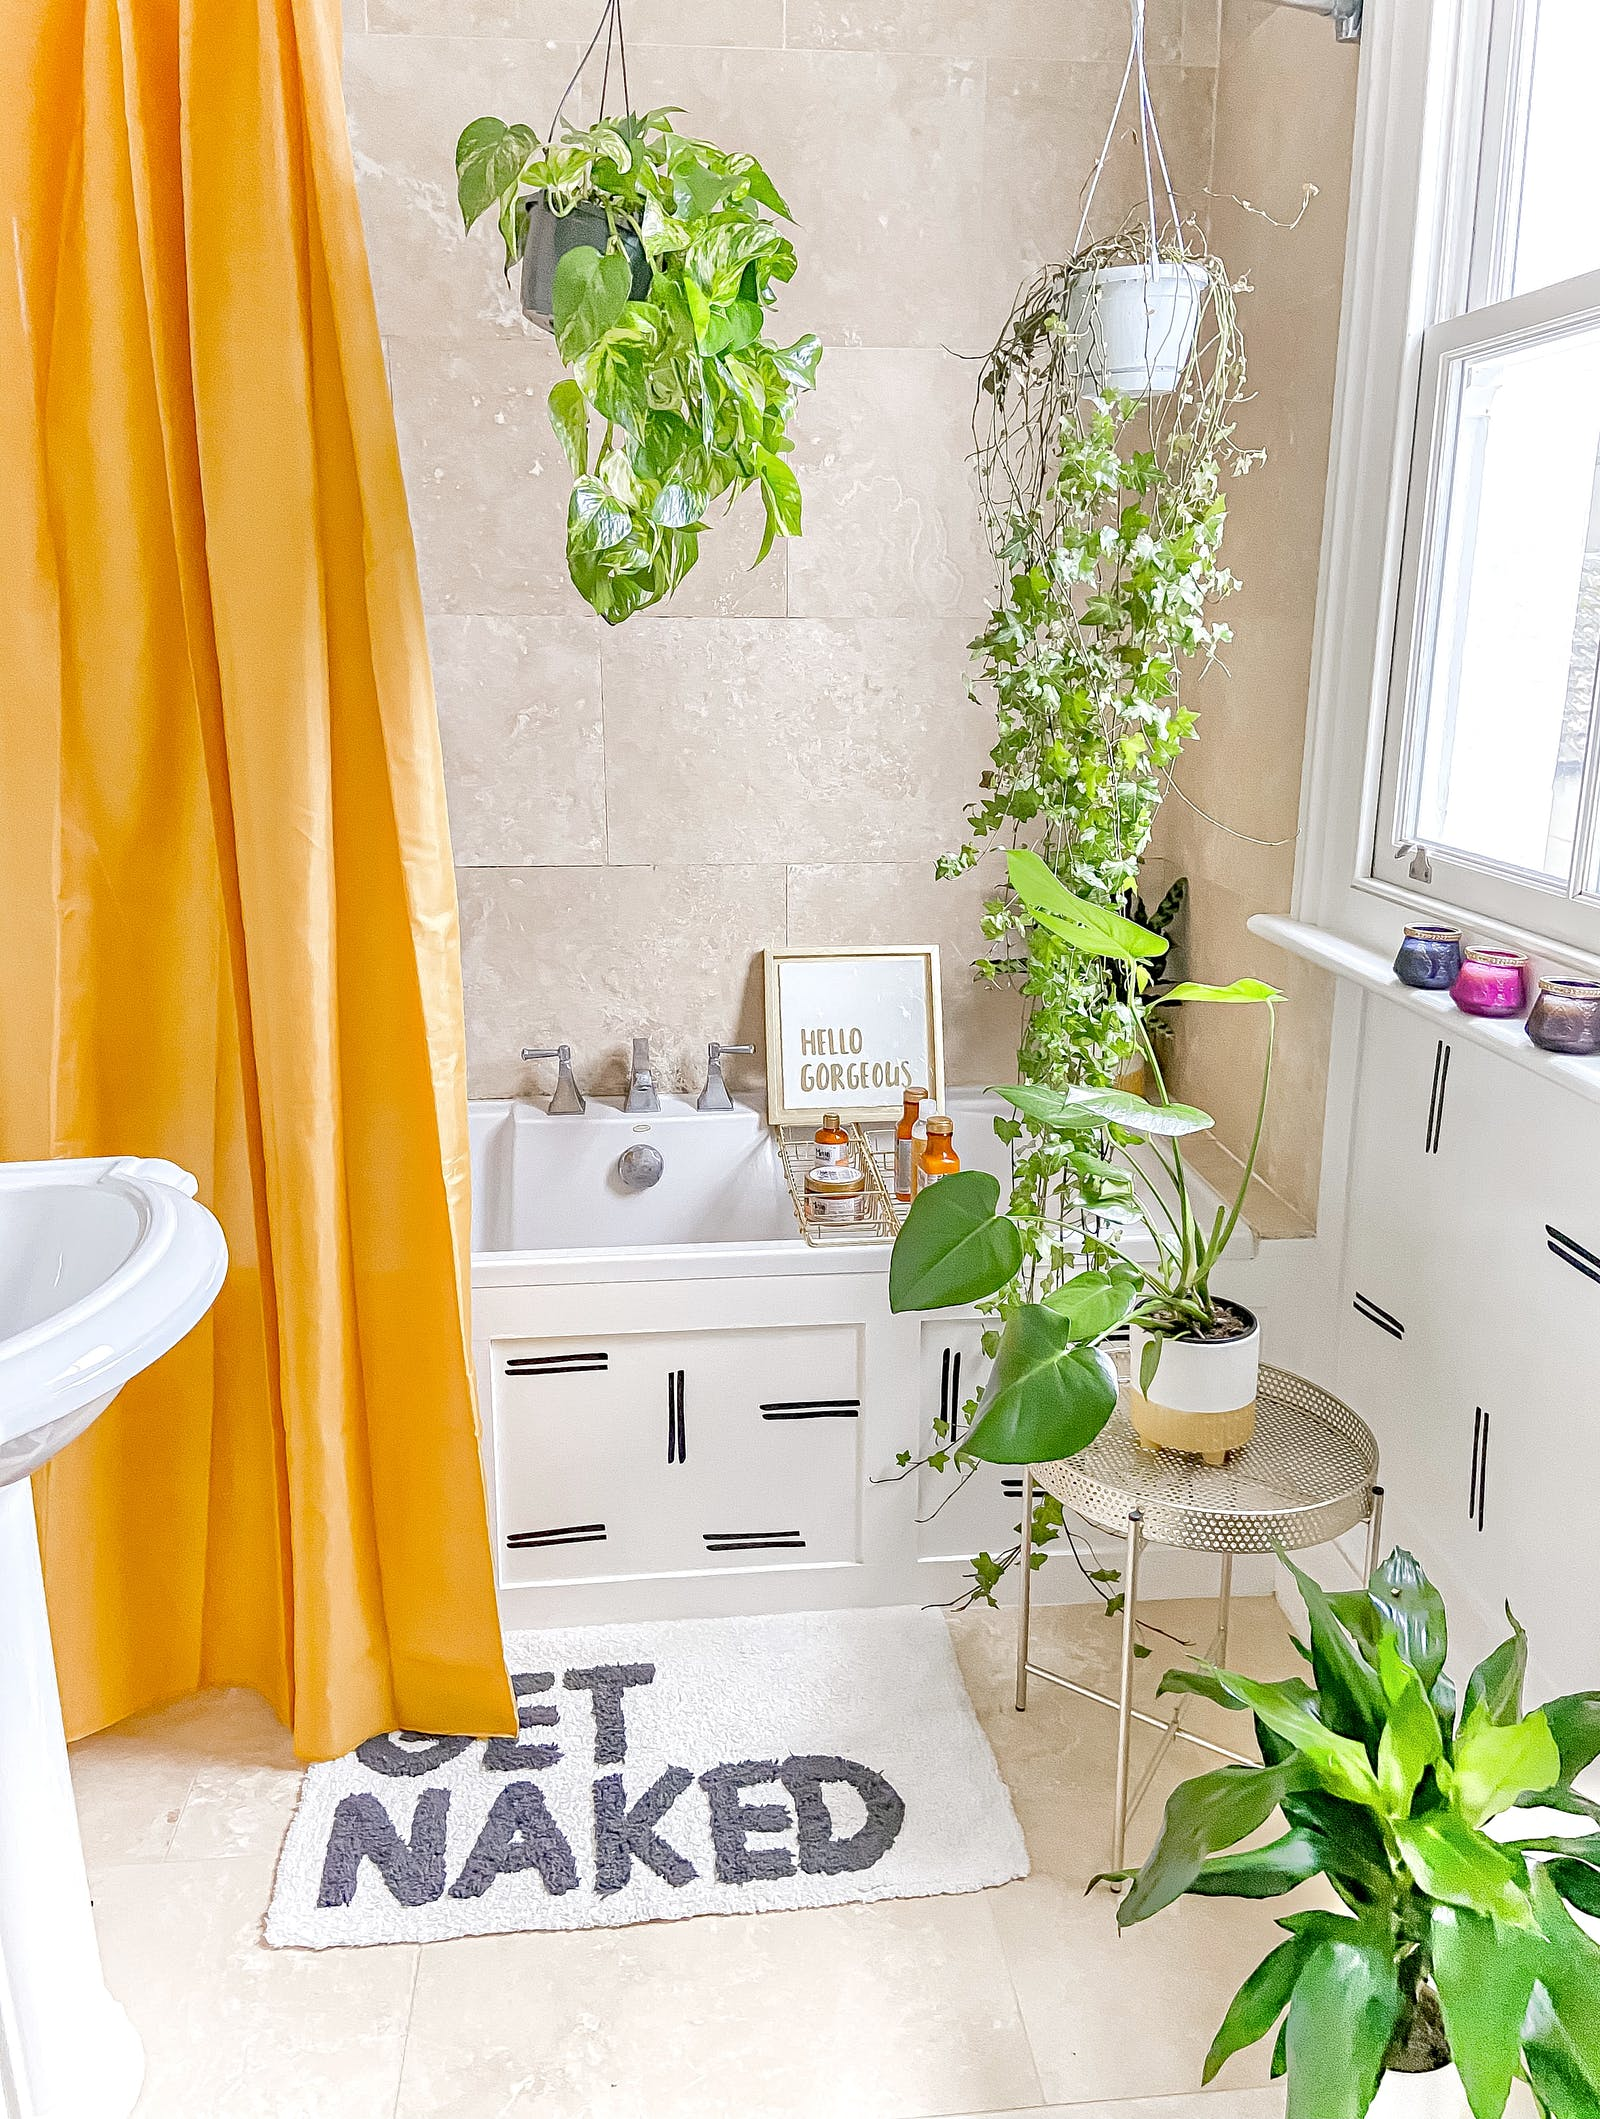 Brightly coloured bathroom with bright orange shower curtain and hanging plants